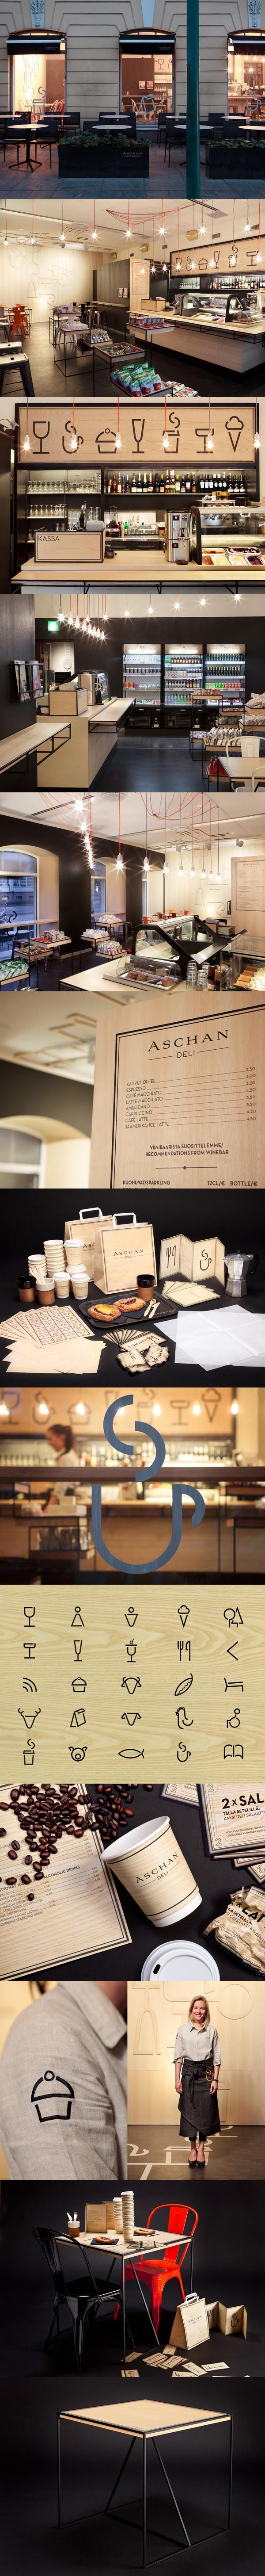 http://www.behance.net/gallery/Aschan-Deli/2185241 Great deli #packaging #branding #marketing PD